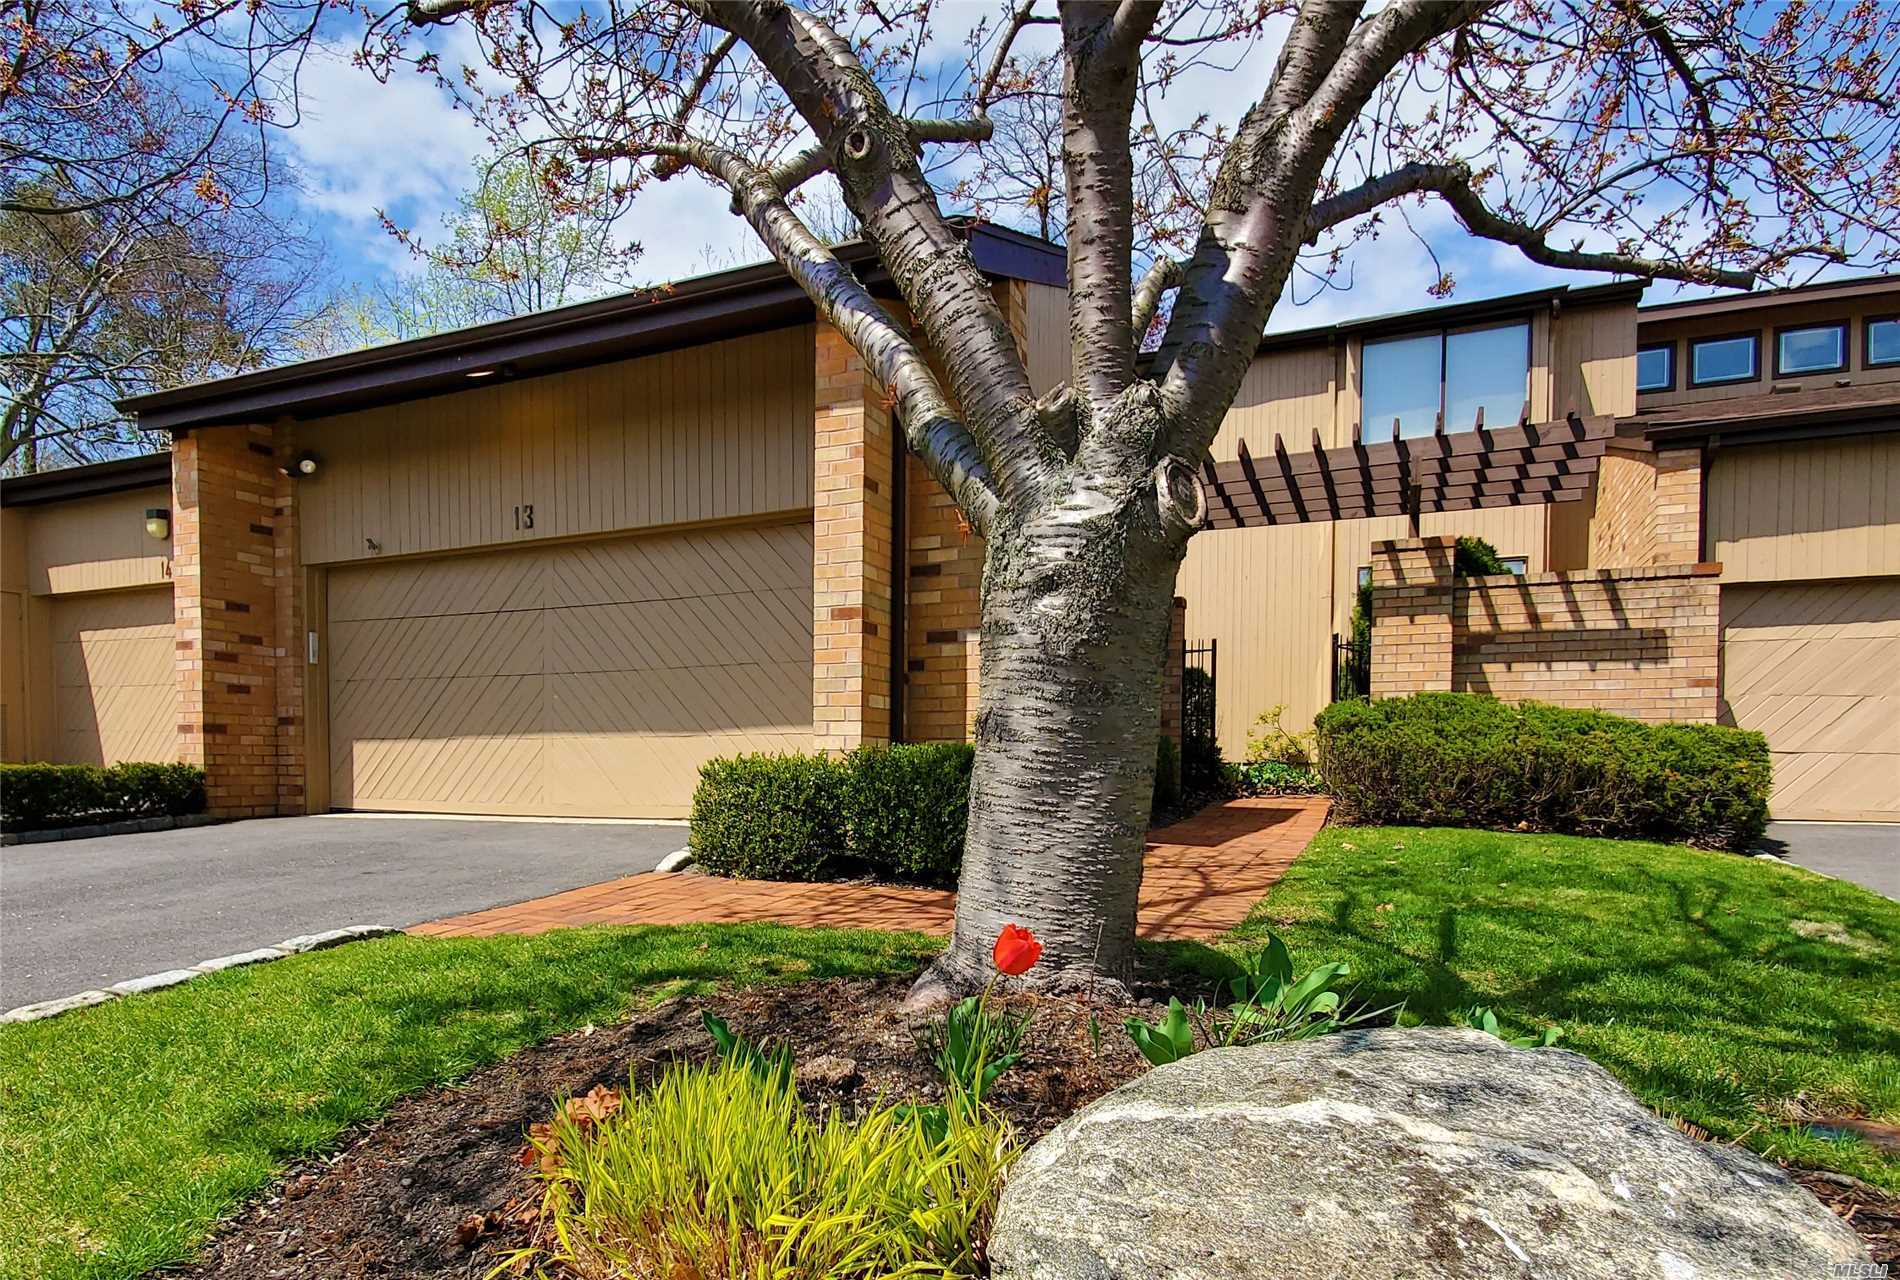 Lovely & Very Spacious Condo. Foyer, EIK, Dr & Lr w/Fpl, Vaulted Ceiling, Skylights. Master Bedroom Suite, Den w/Full Bath. Access To Garage From Laundry Area. Deck From Living Room & Bedroom. Second Level Has Loft Area w/ 2 Bedrooms & Full Bath. Huge Walk Out Lower Level w/Additional Rooms, Full Bath & Storage. Conveniently Located Near Transportation & Shops.